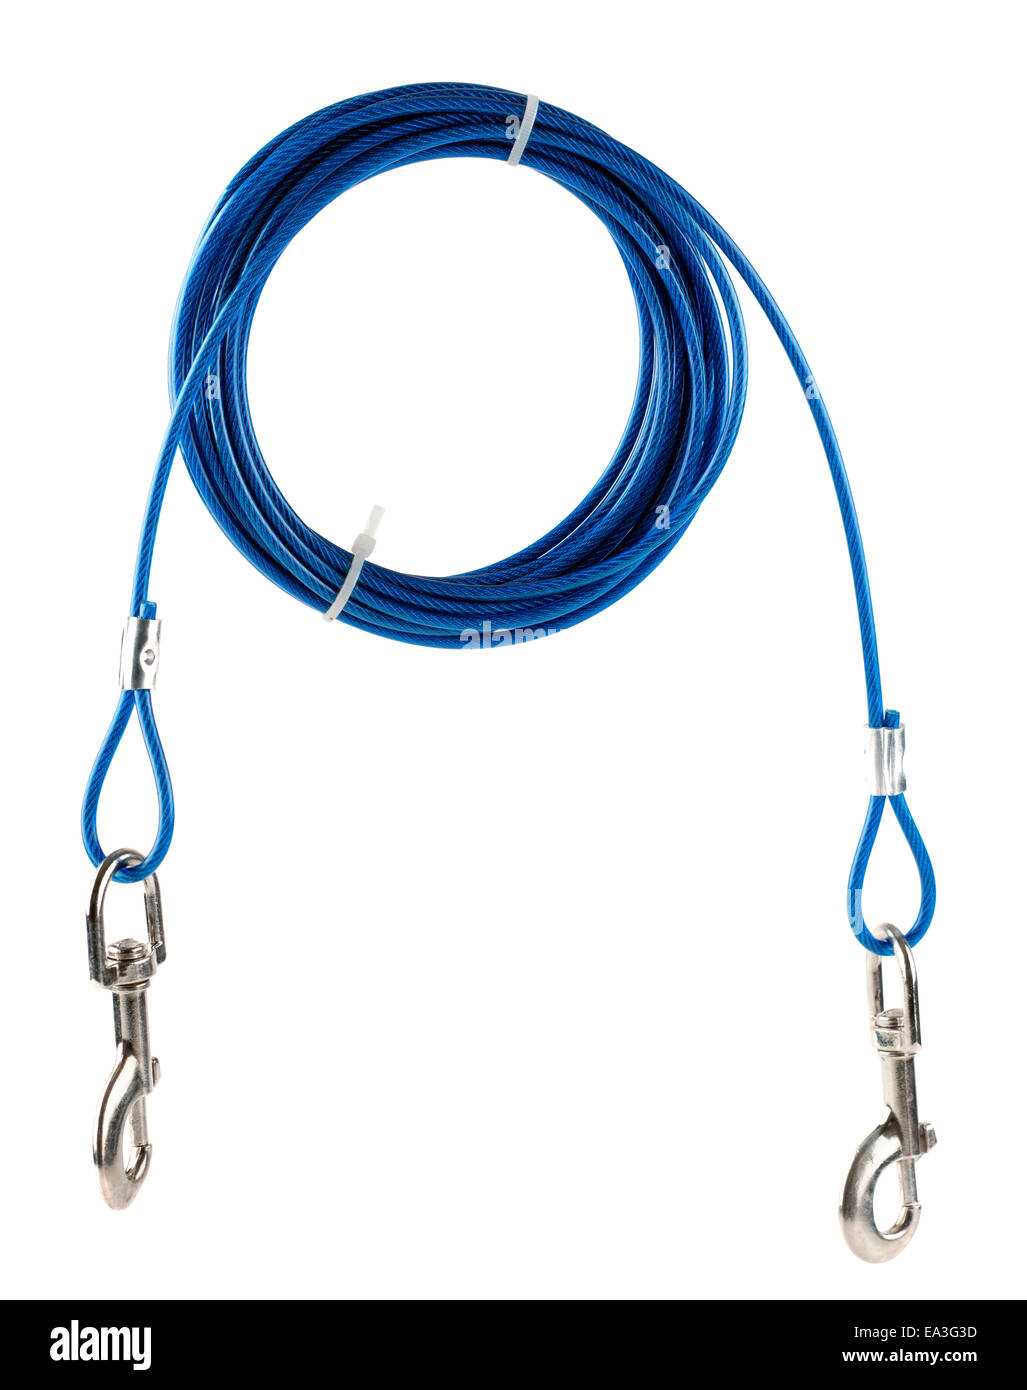 Dog tie up plastic coated wire with quick release clips - Stock Image